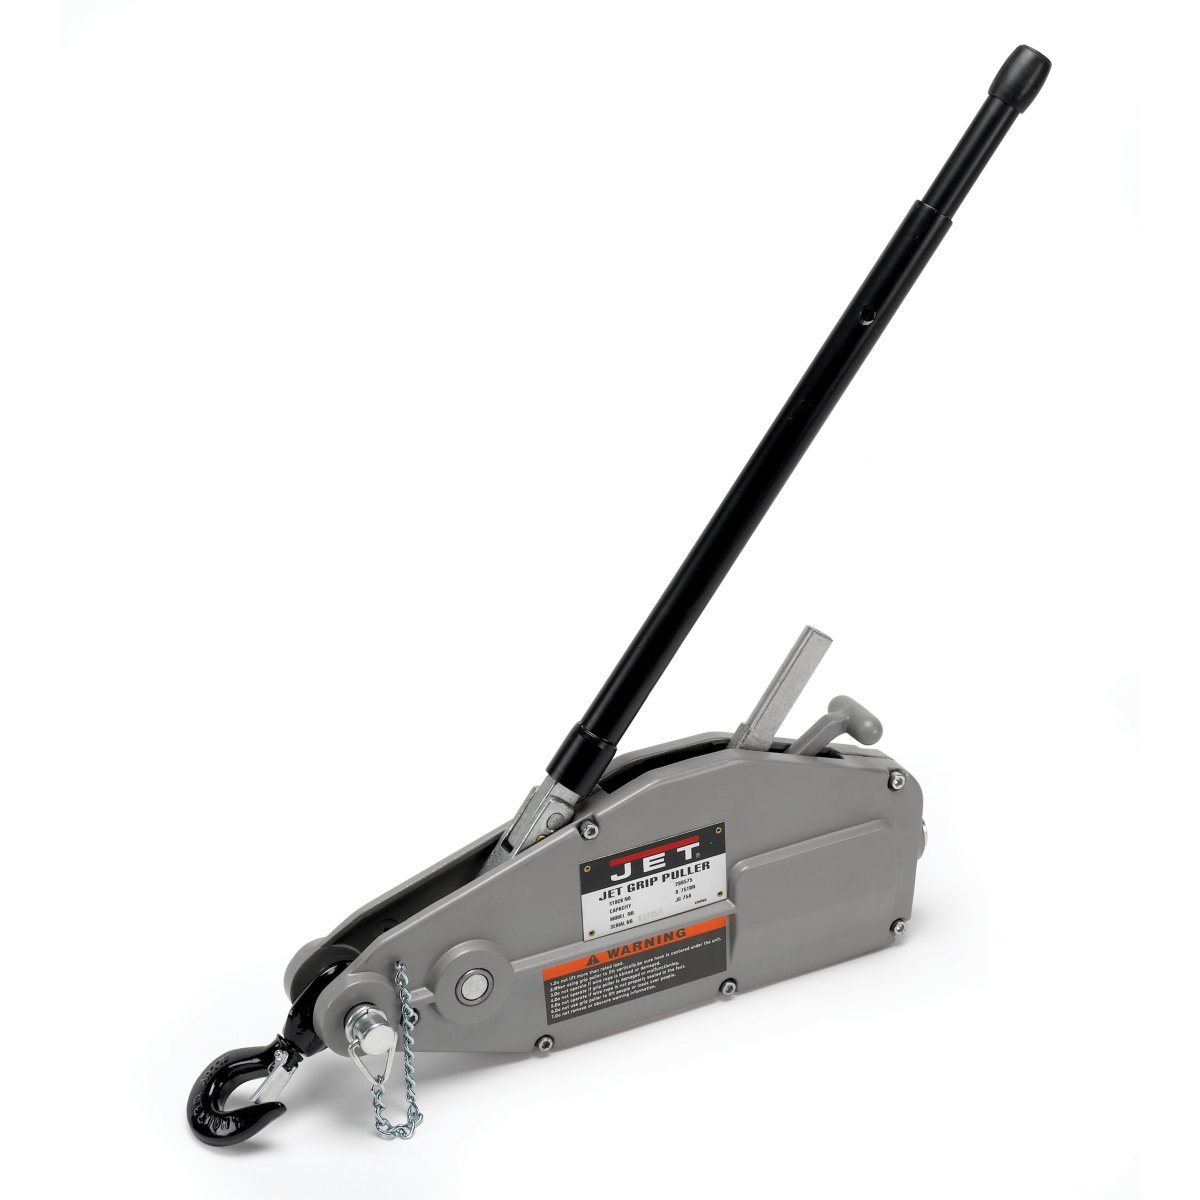 JET LIFTING SYSTEMS JG-150A 1-1//2 Ton Wire Rope Grip Puller with Cable 286515K